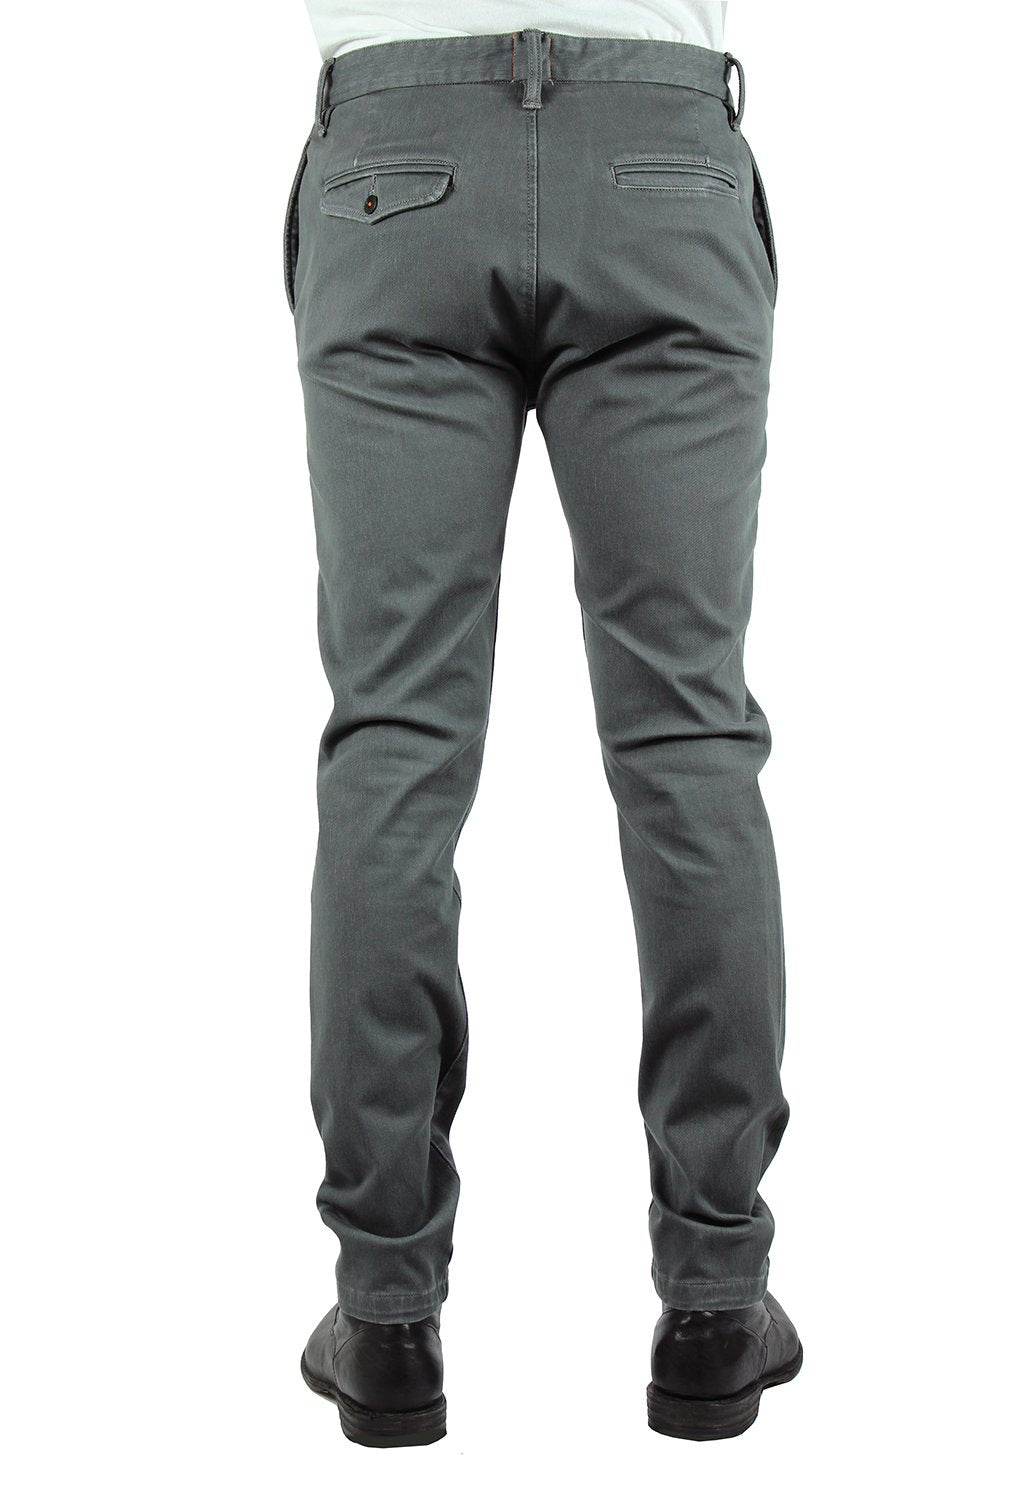 """THE AXE"" - CHARCOAL SLIM CHINO 12OZ 4WAY FRENCH TERRY"